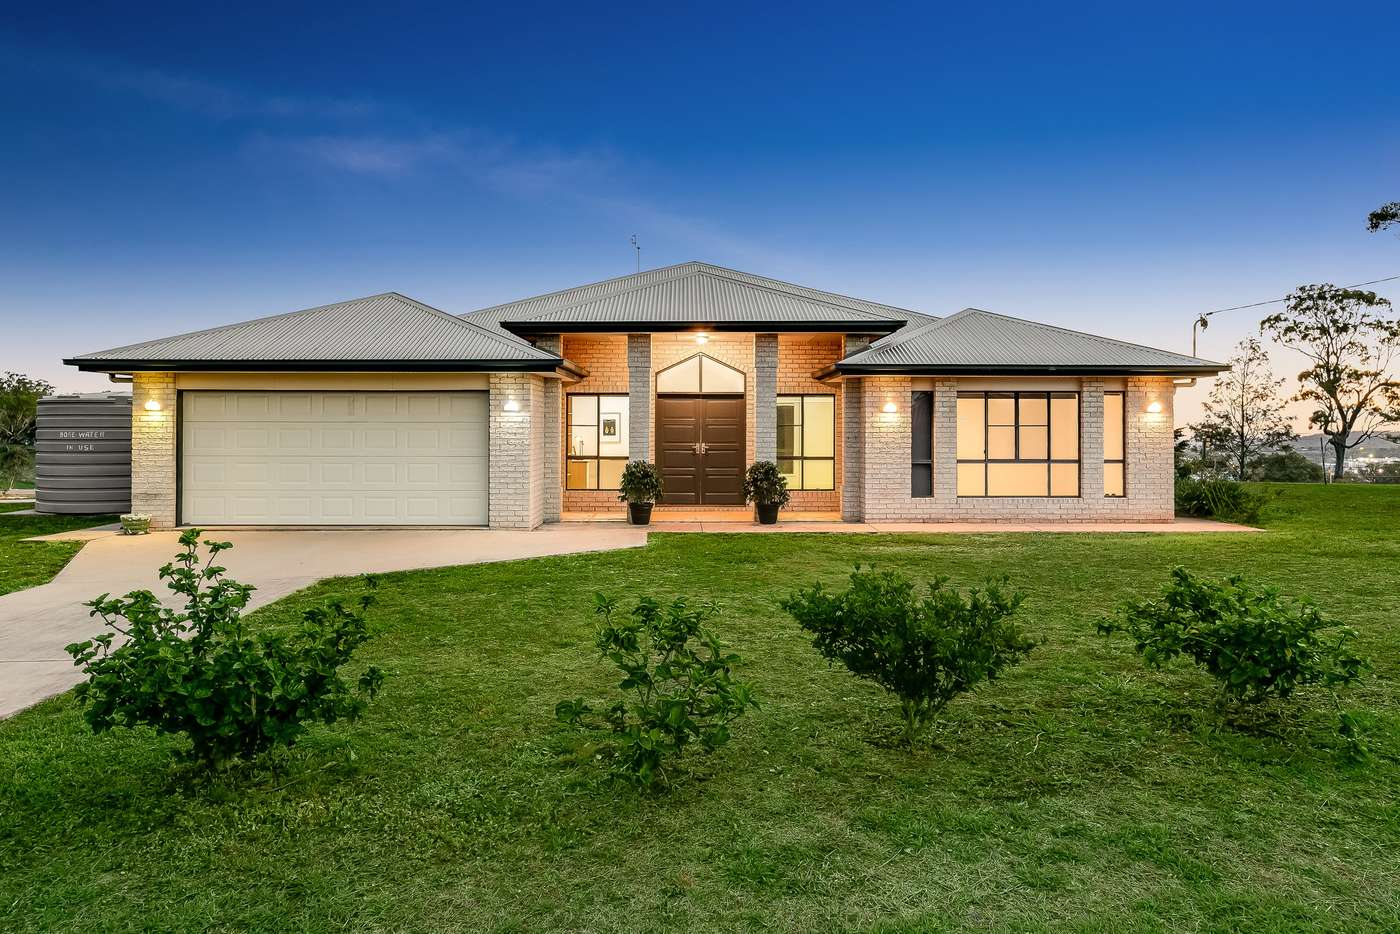 Main view of Homely house listing, 21 Coverdale Crescent, Cotswold Hills QLD 4350